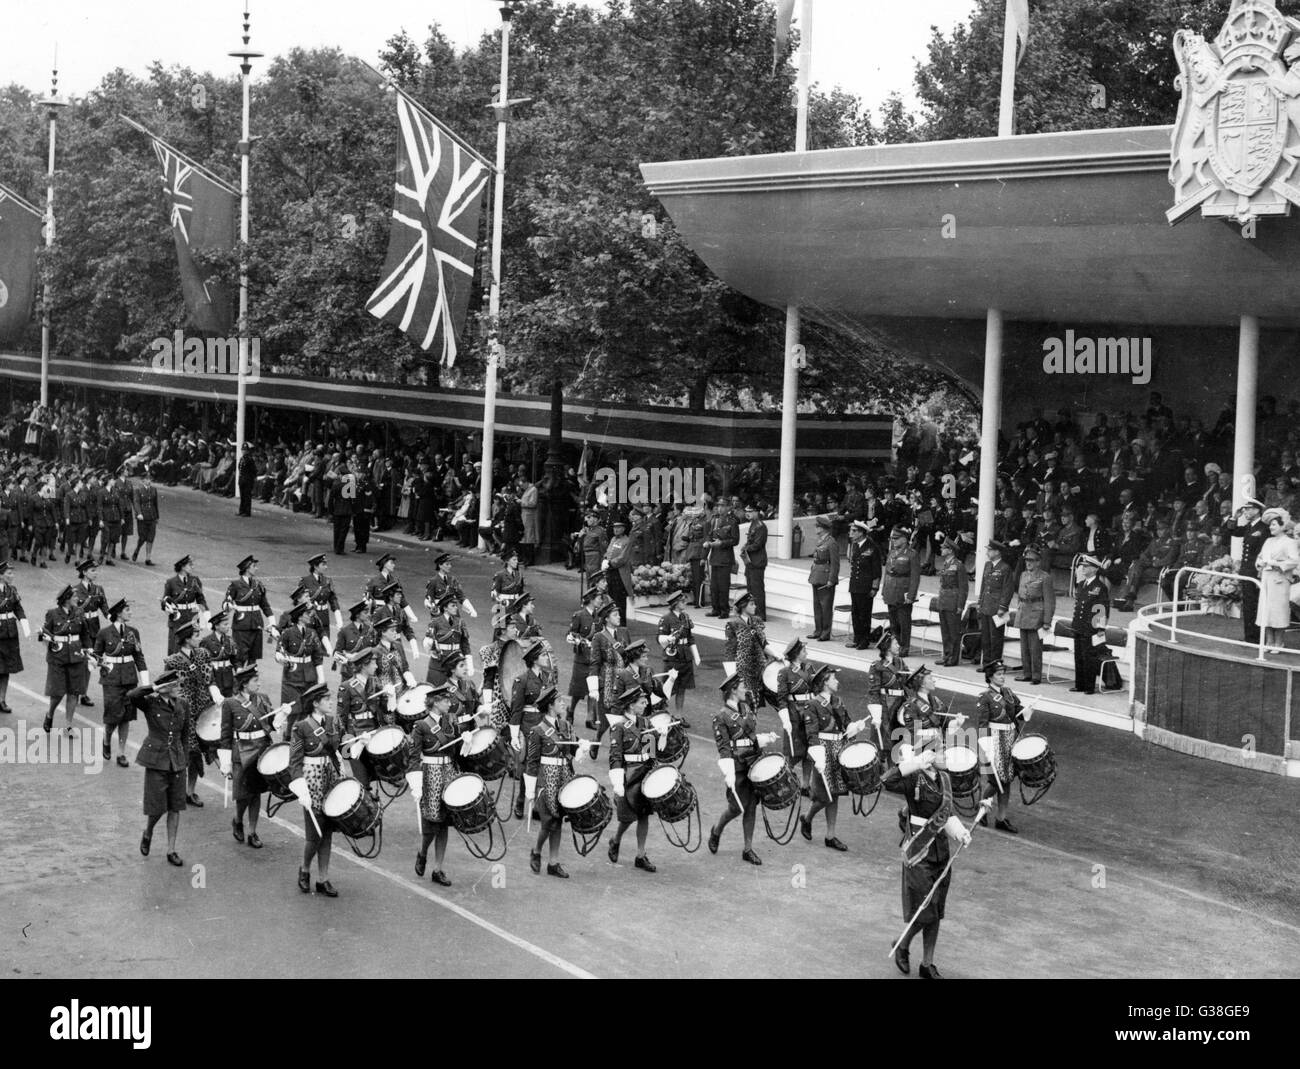 The Victory Parade : The WAAF  (Womens Auxiliary Air Force)  Band passes the Saluting Base        Date: 8 June 1946 - Stock Image